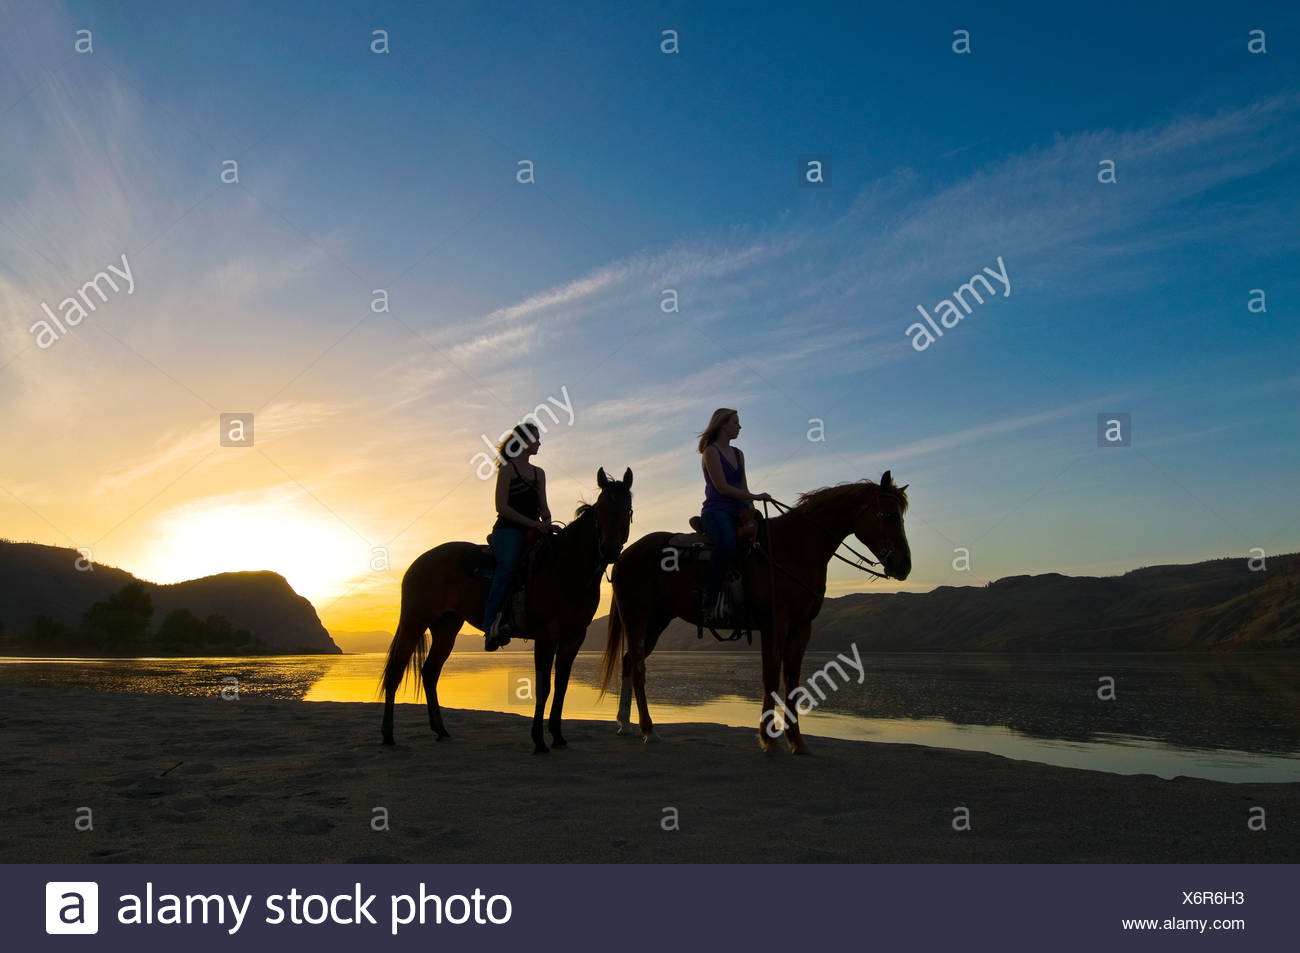 Two young women enjoy stunning view horses sunset - Stock Image